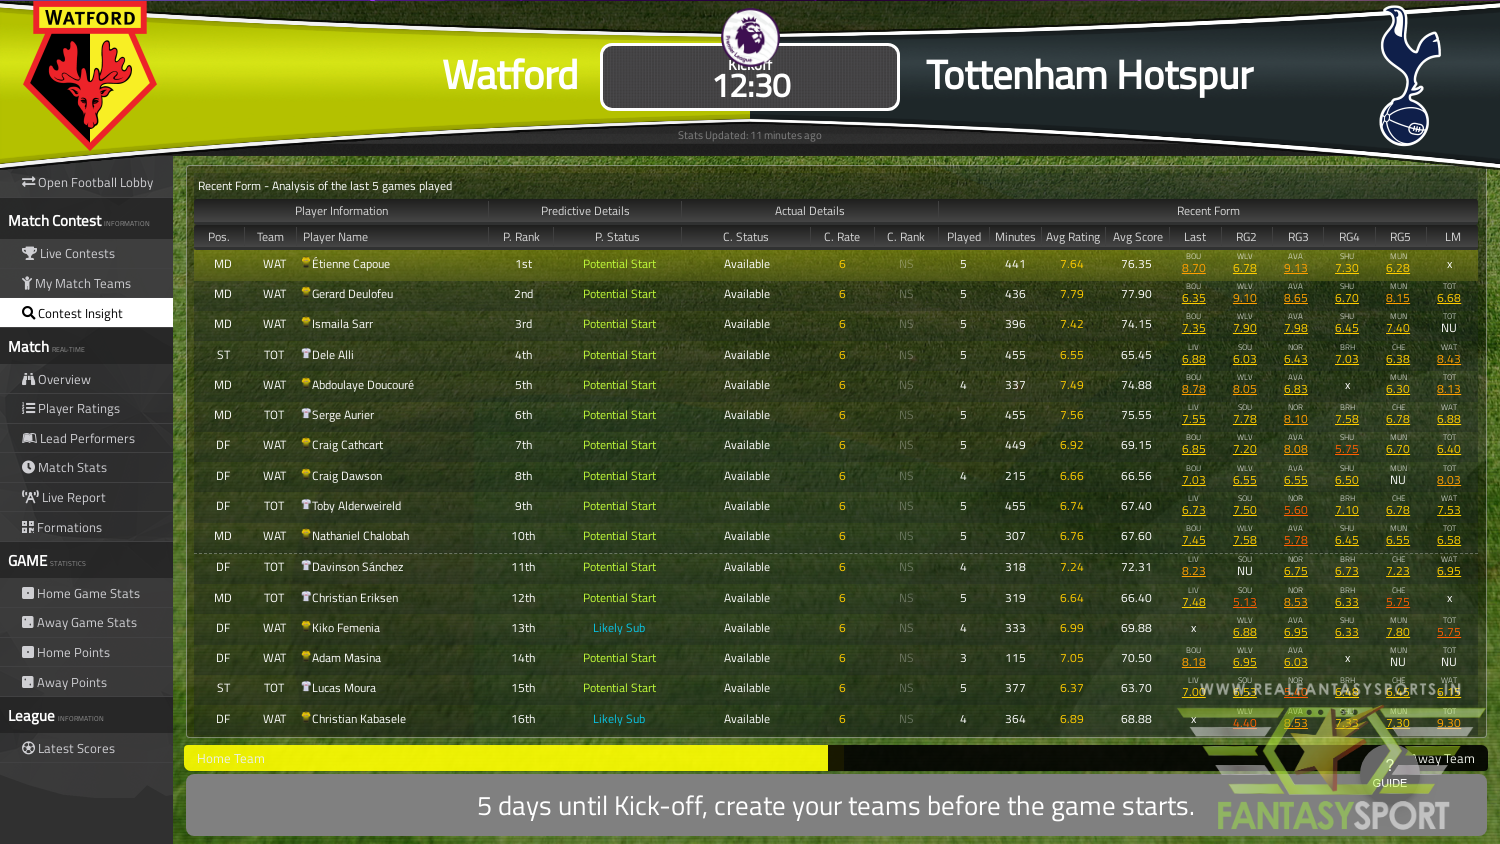 Fantasy Football Watford Vs Tottenham Hotspur Saturday 18th January 2020